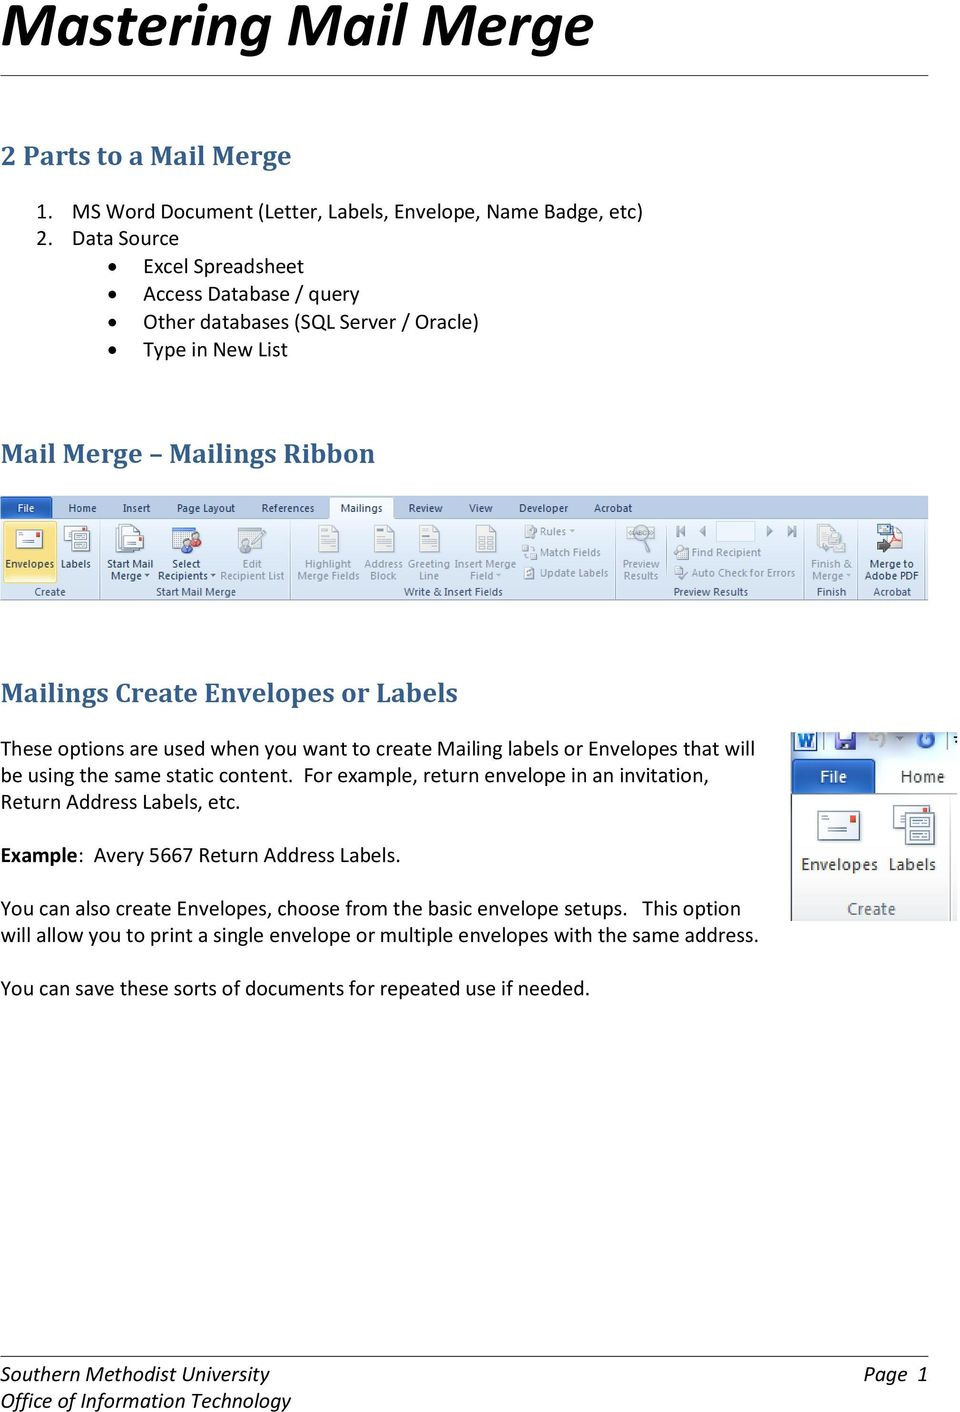 used when you want to create Mailing labels or Envelopes that will be using the same static content. For example, return envelope in an invitation, Return Address Labels, etc.